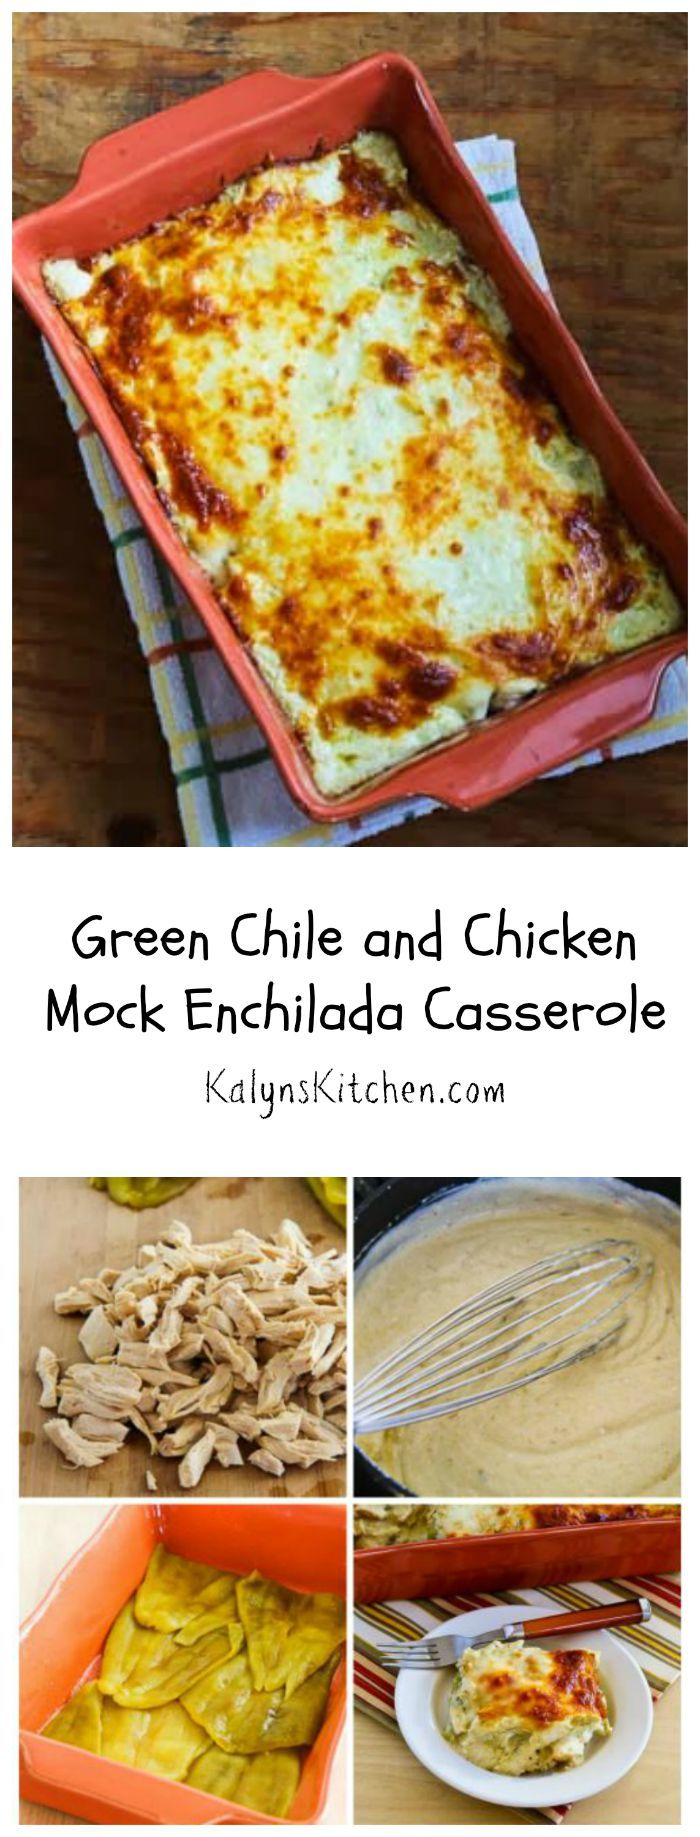 #BackToSchool means it's time for casseroles, and this Green Chile and Chicken Mock Enchilada Casserole is a #LowCarb and #GlutenFree healthy casserole recipe the whole family will enjoy. This has been hugely popular on my blog and all my extended family loves it. [from KalynsKitchen.com]